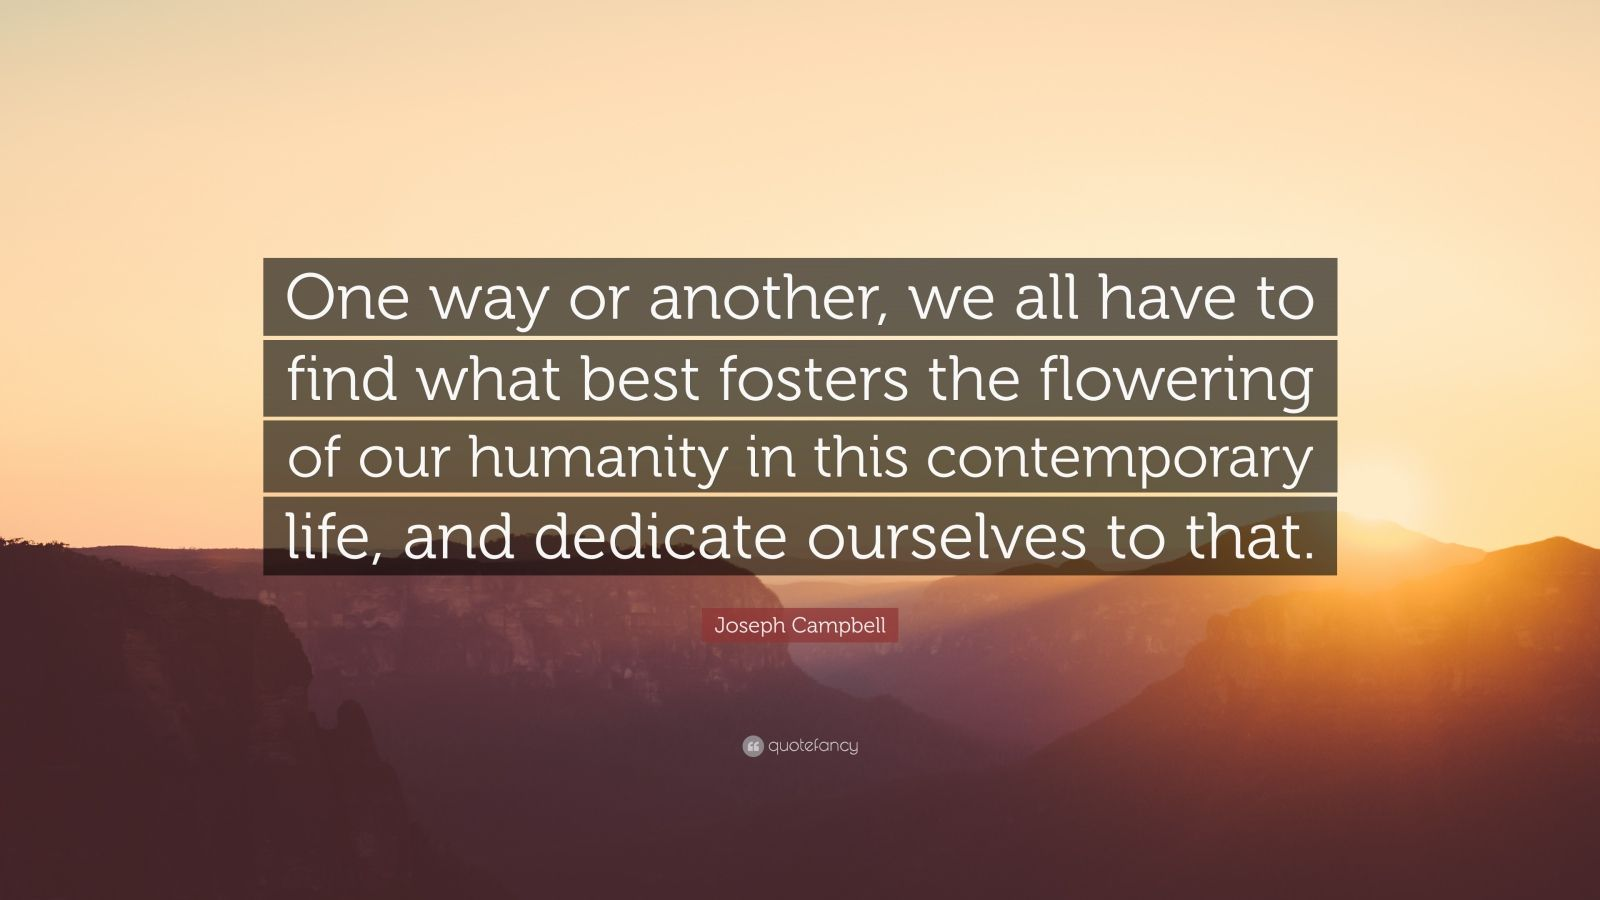 """Joseph Campbell Quote: """"One way or another, we all have to find what best fosters the flowering of our humanity in this contemporary life, and dedicate ourselves to that."""""""